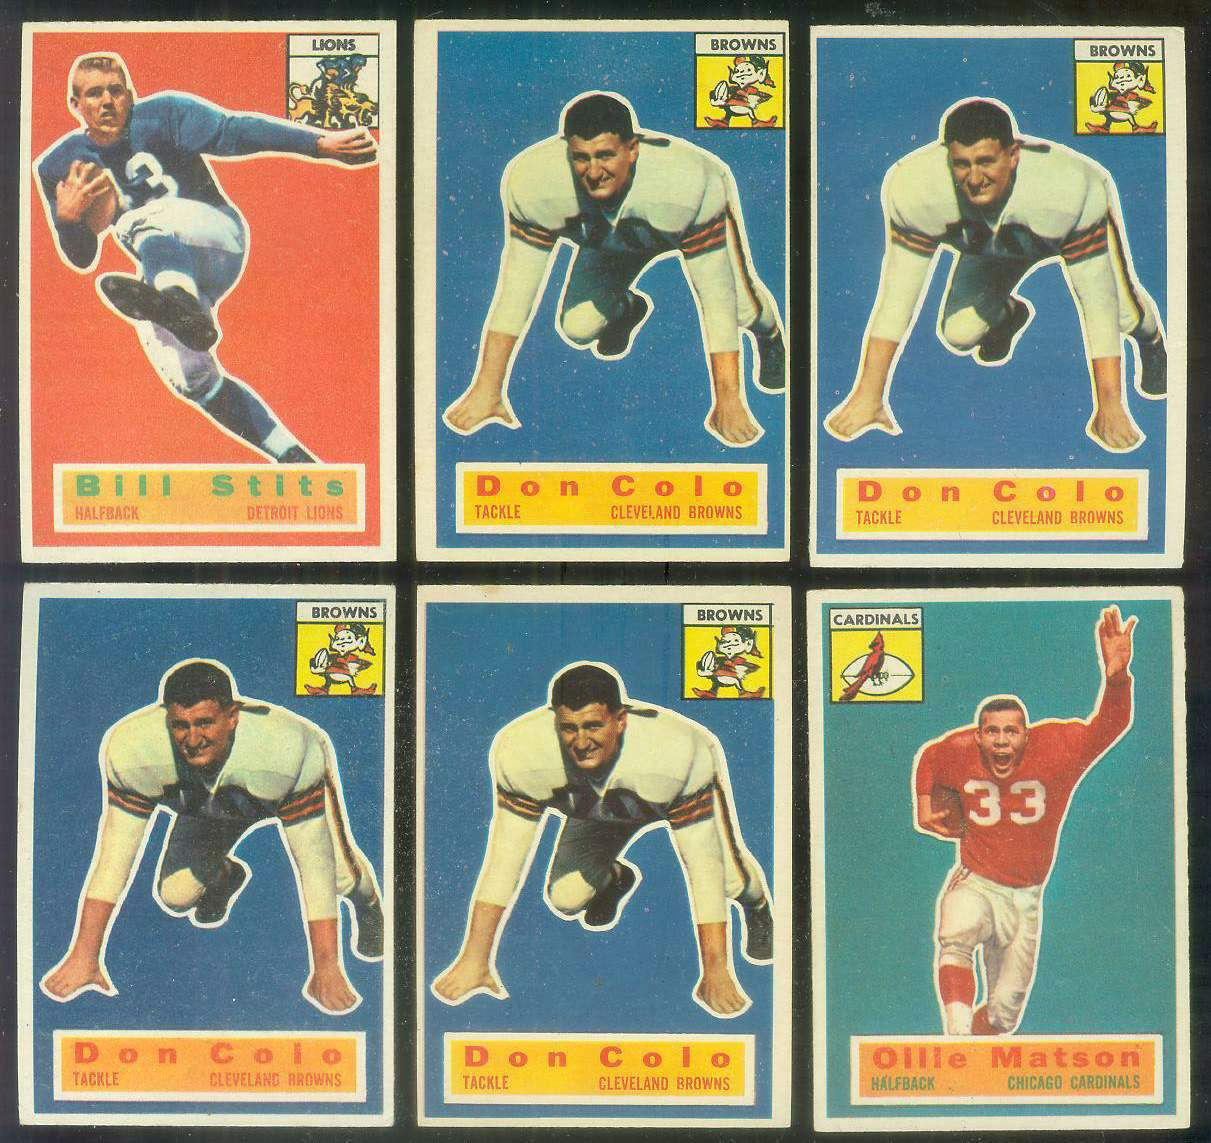 1956 Topps FB #.58 Ollie Matson SHORT PRINT (Chicago Cardinals) Football cards value